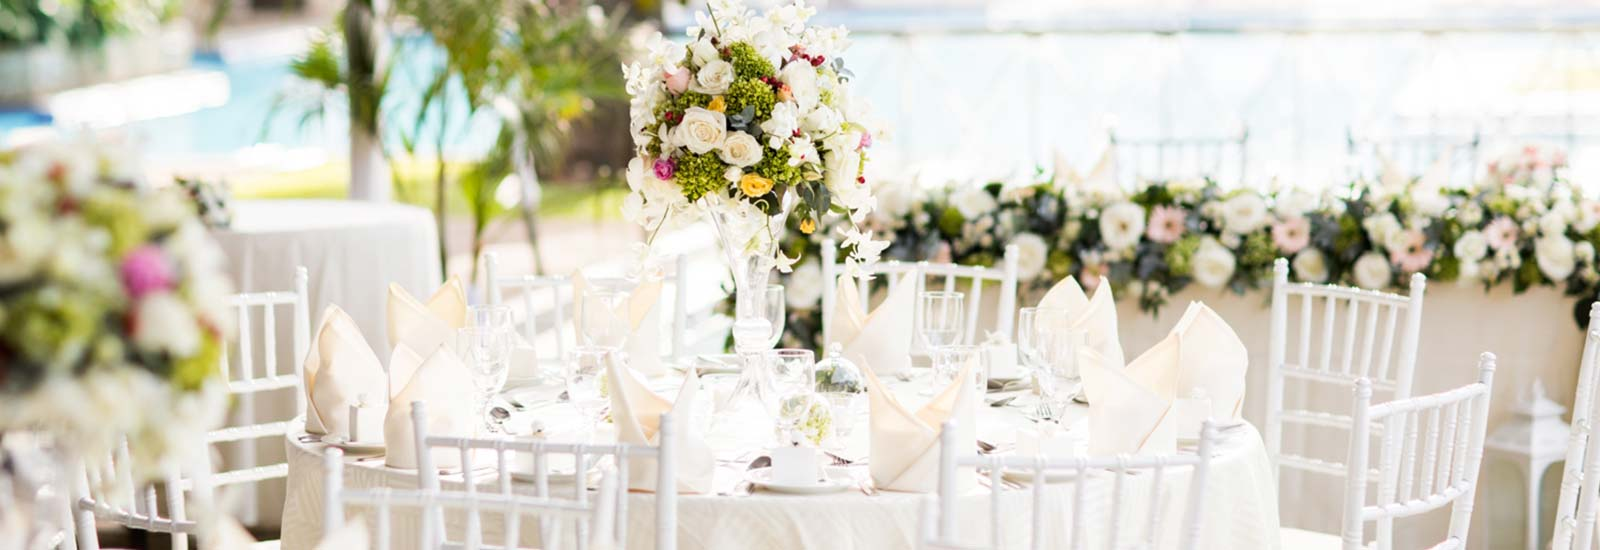 Outdoor Wedding Decorations at Mahaweli Reach Hotel